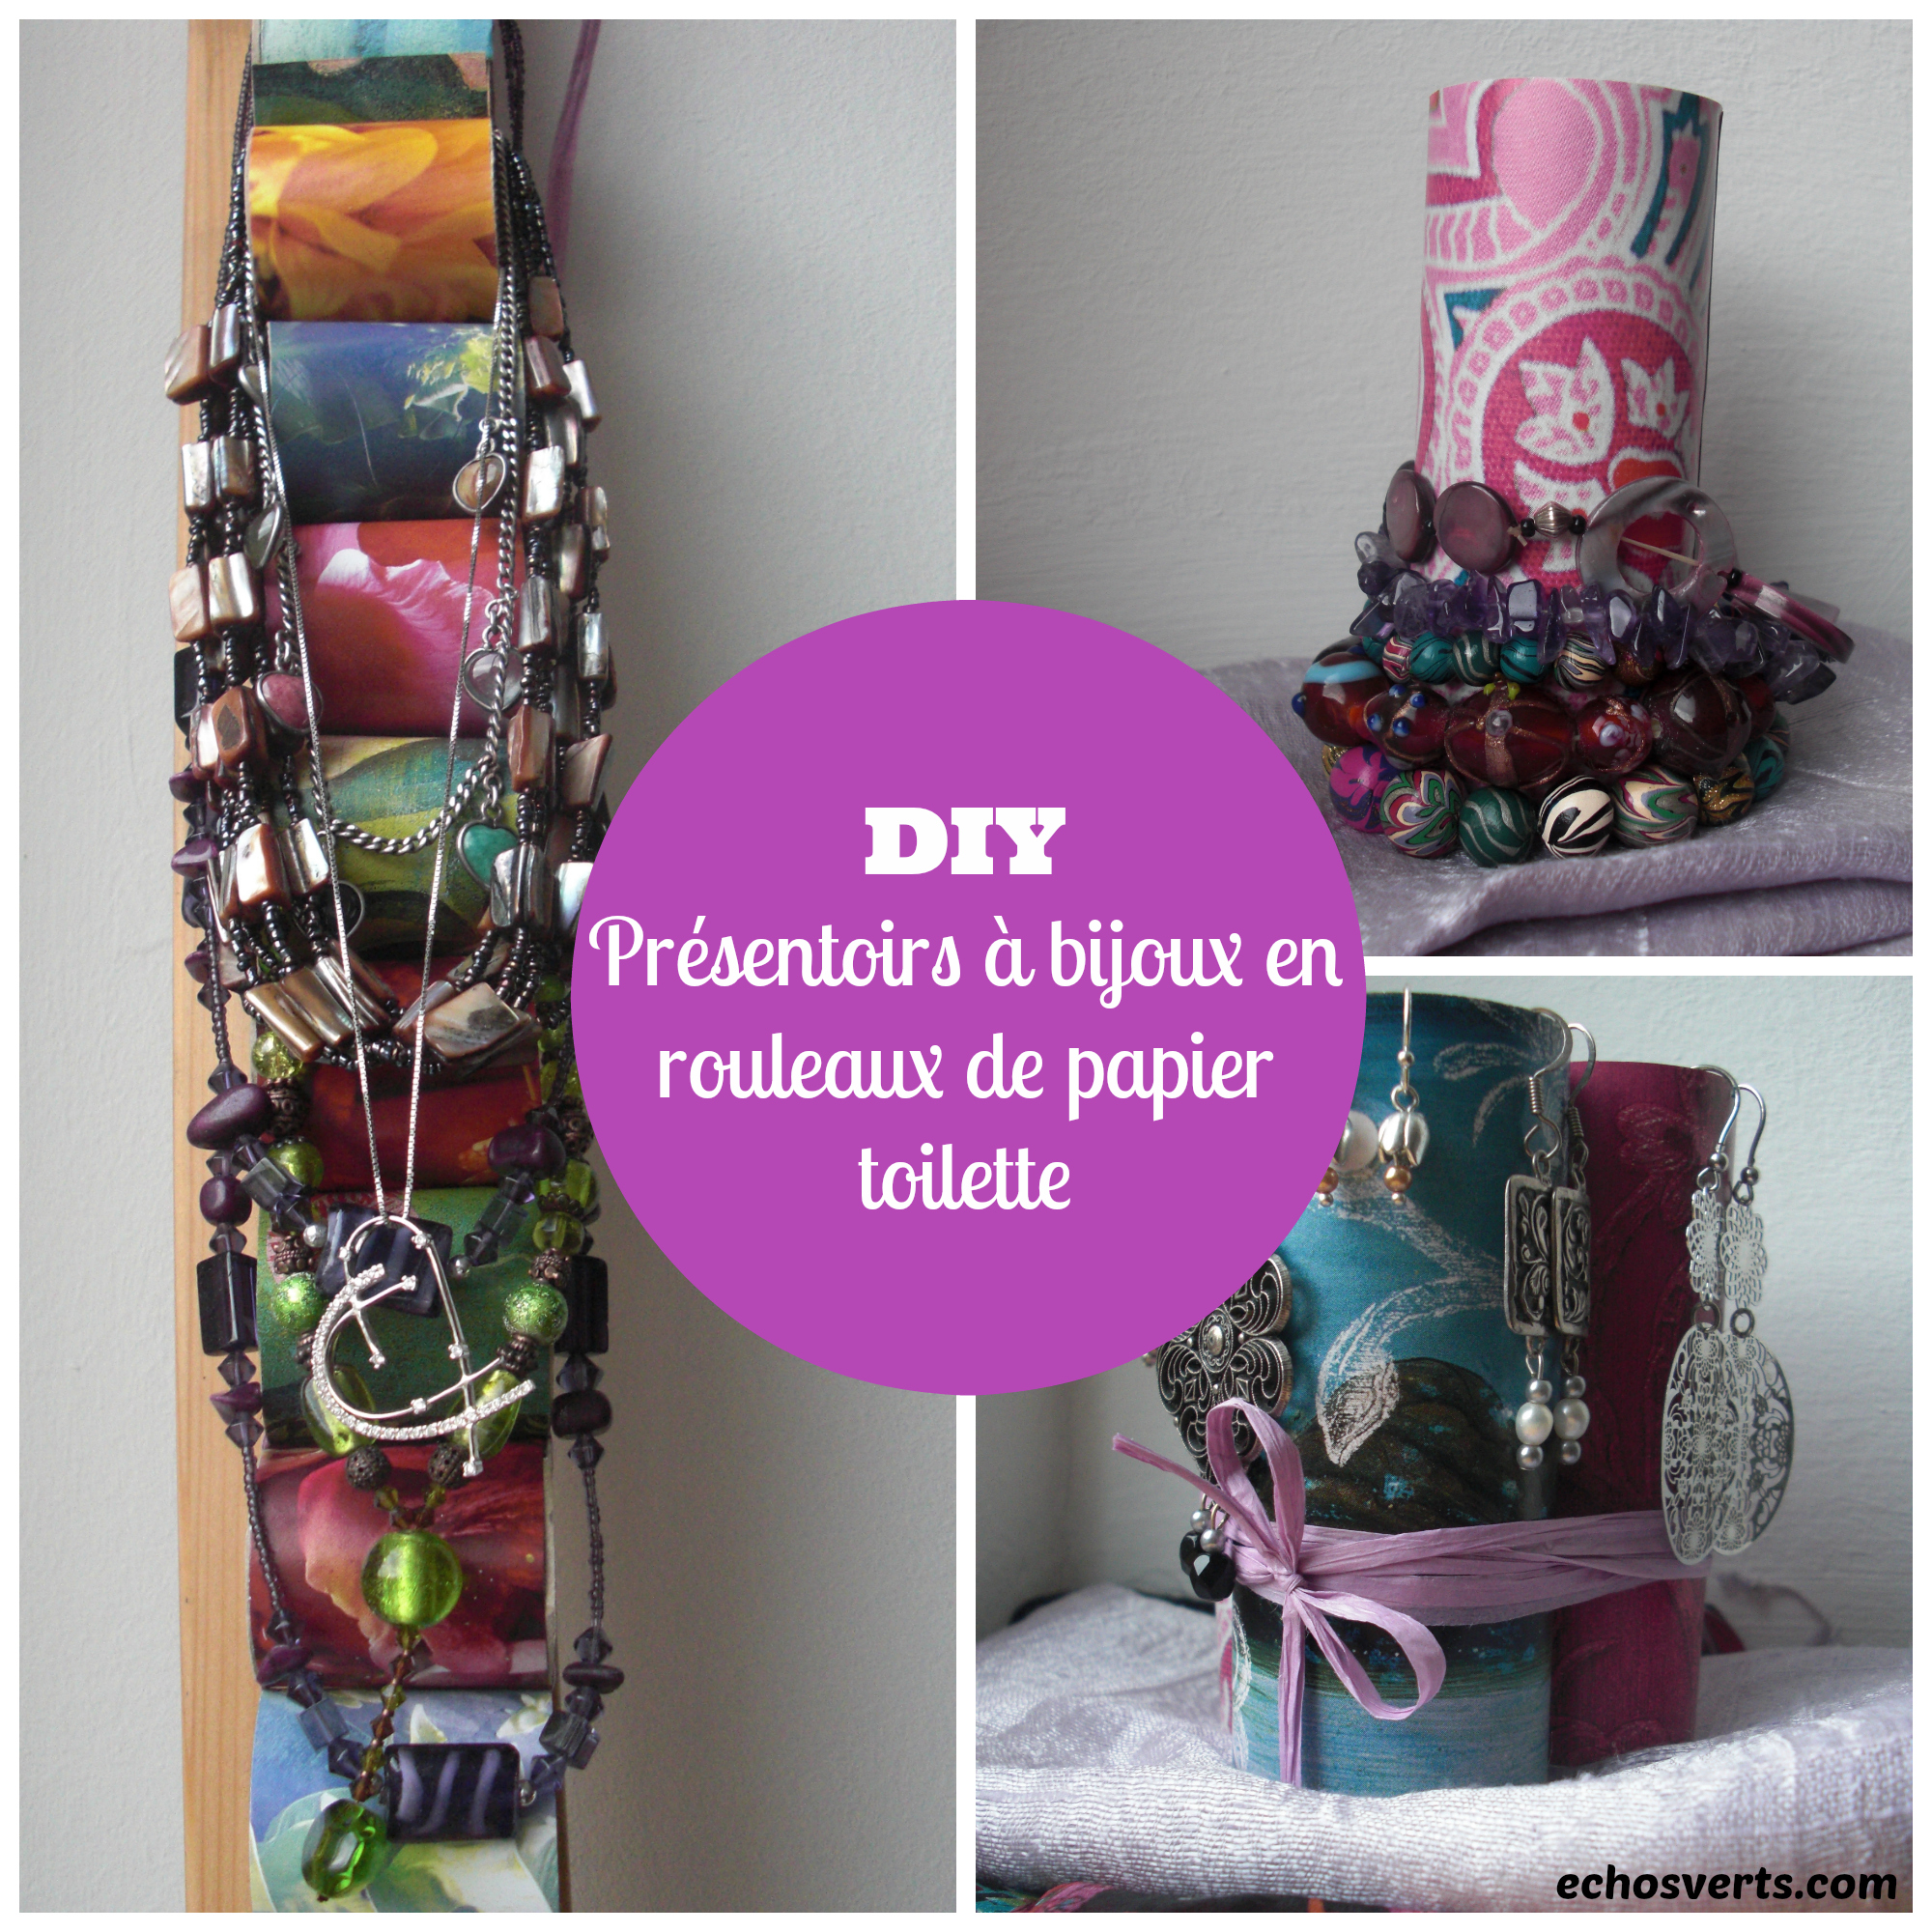 diy pr sentoirs bijoux en rouleaux de papier toilette chos verts. Black Bedroom Furniture Sets. Home Design Ideas